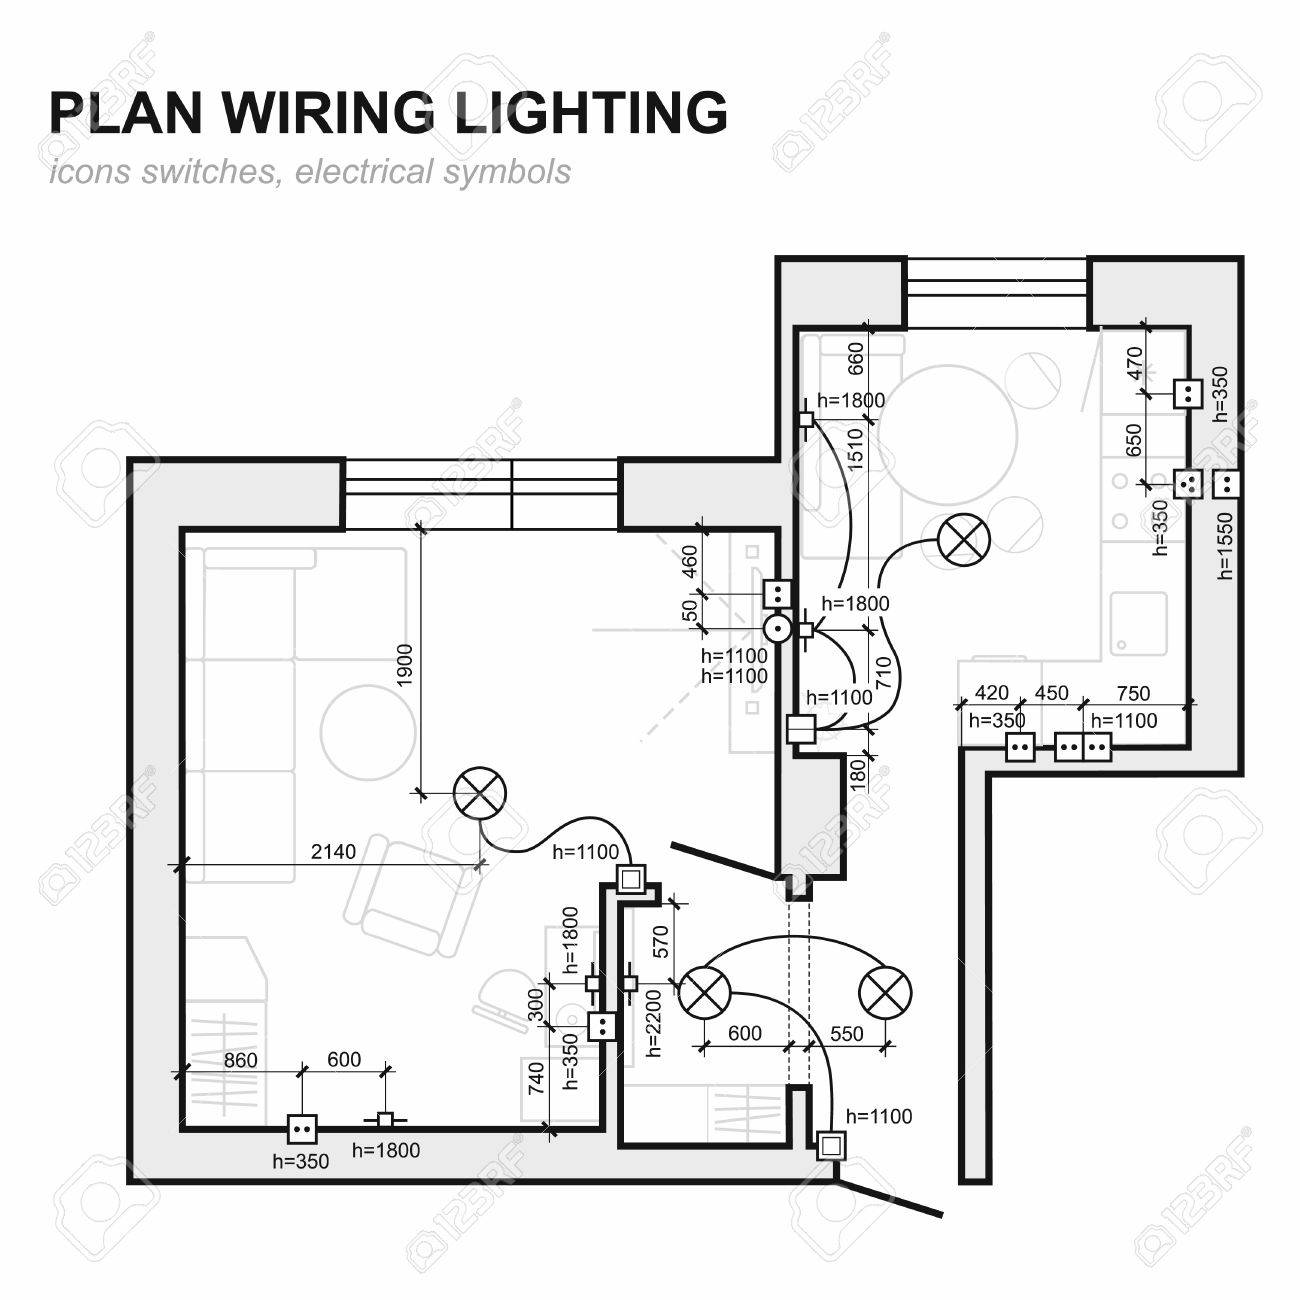 Wiring Lighting on lighting module, electrical conduit, lighting outlet, ground and neutral, lighting kitchen, lighting rigging, lighting service, power cable, lighting power, extension cord, lighting load calculations, three-phase electric power, wiring diagram, lighting hardware, lighting a fuse, distribution board, lighting installation, power cord, electric motor, lighting pipes, lighting software, earthing system, lighting transformers, lighting wood, knob-and-tube wiring, alternating current, junction box, national electrical code, lighting knobs, lighting painting, circuit breaker, electric power distribution, lighting inverter, lighting dimmers, lighting conduit, lighting components, electrical engineering,